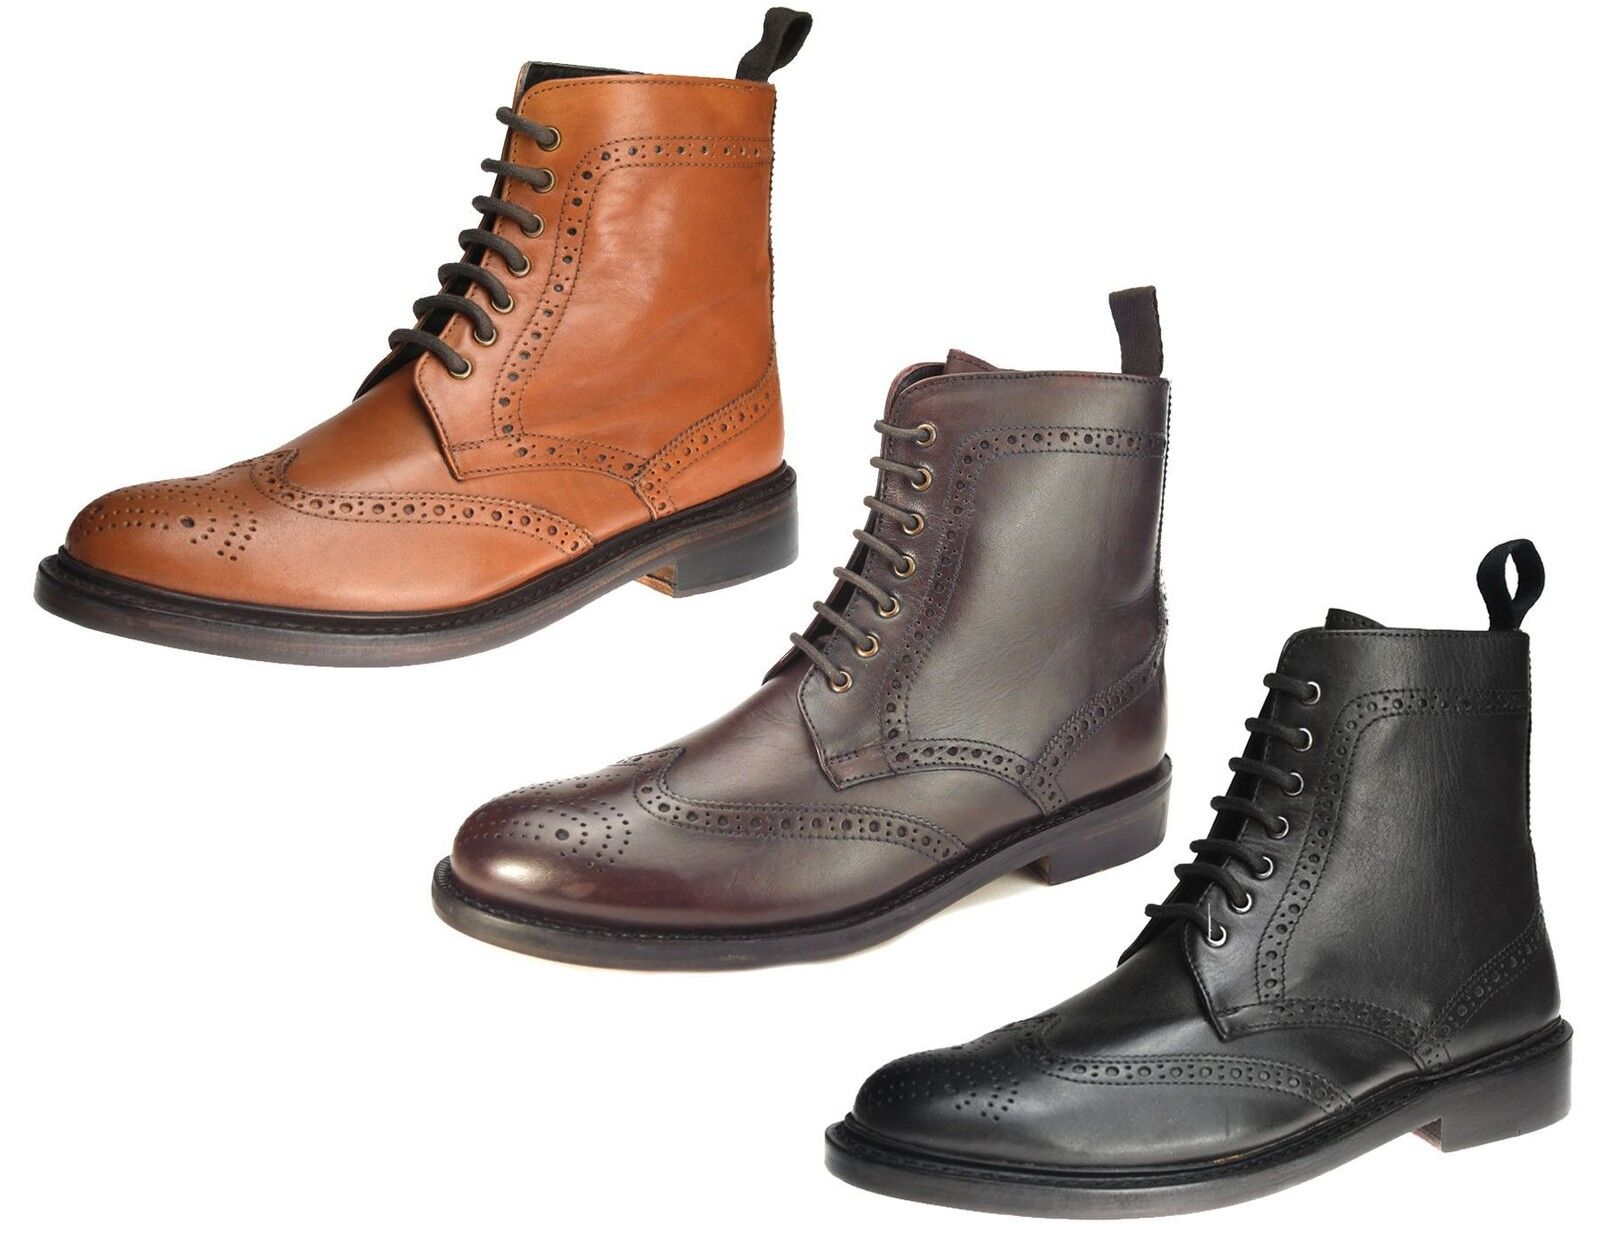 Benchgrade 1920 Mens Leather Welted Lace Up Brogue Dealer Boots 7 8 9 10 11 12